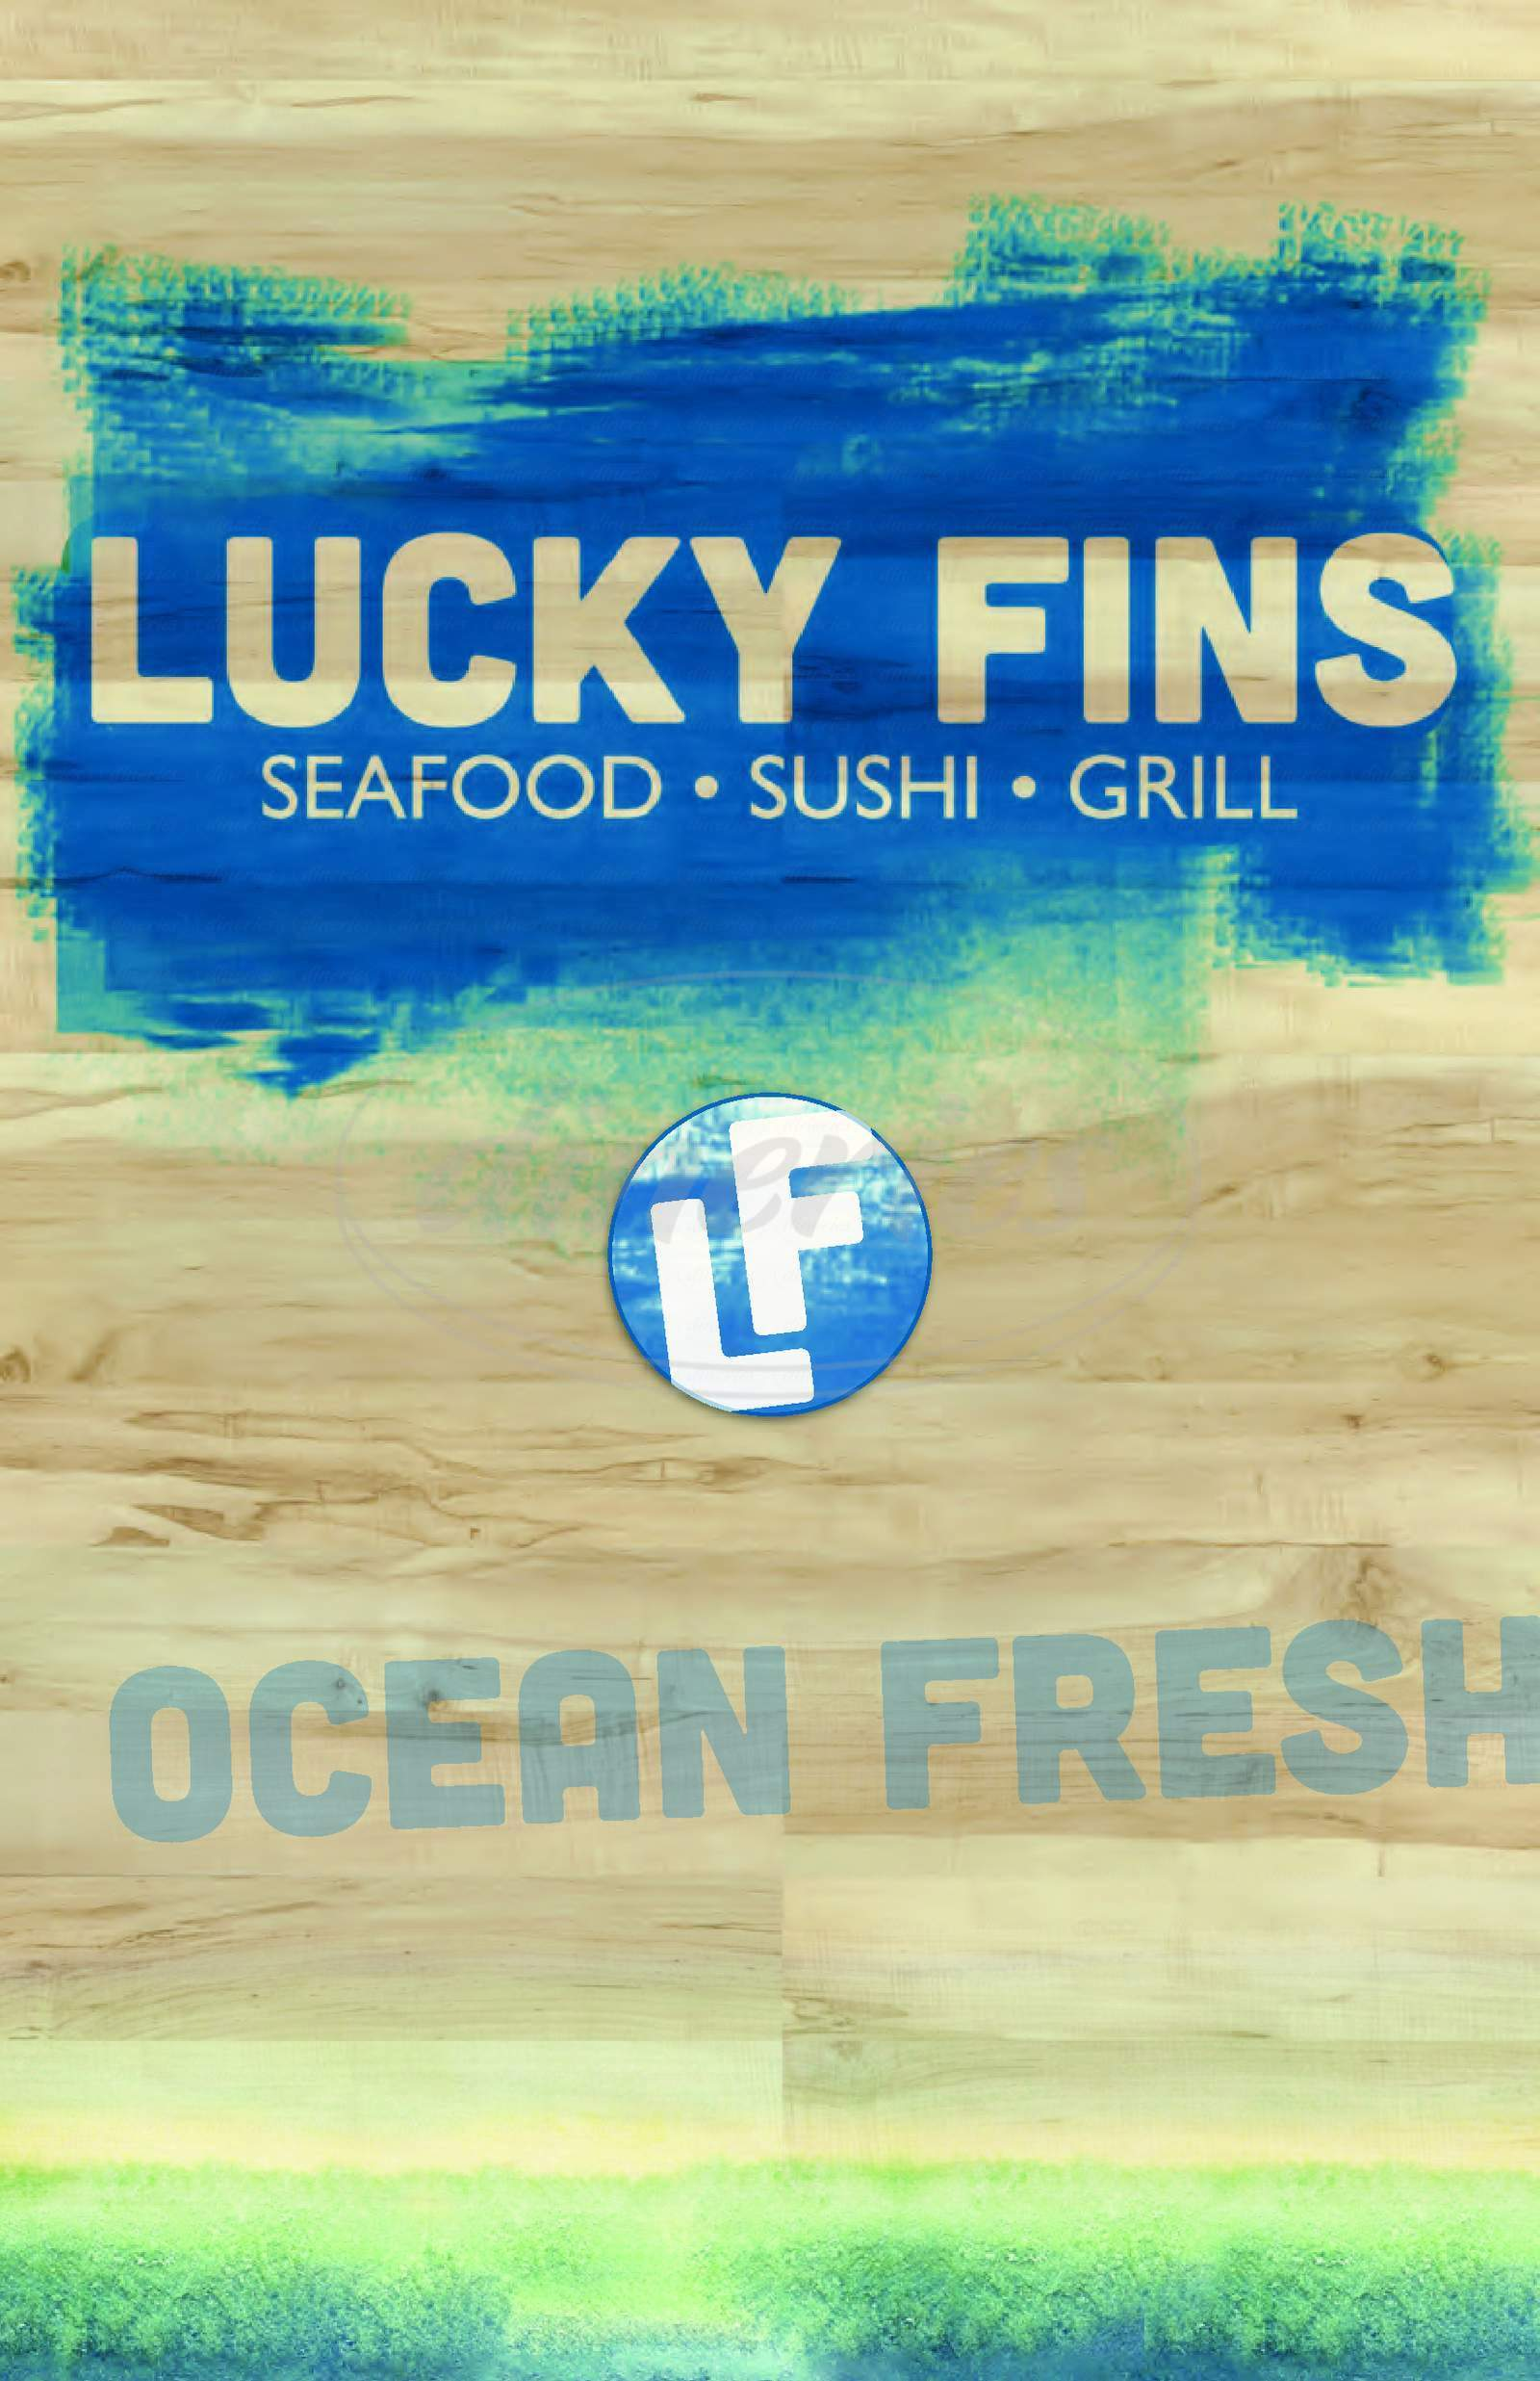 menu for Lucky Fins Seafood Grill